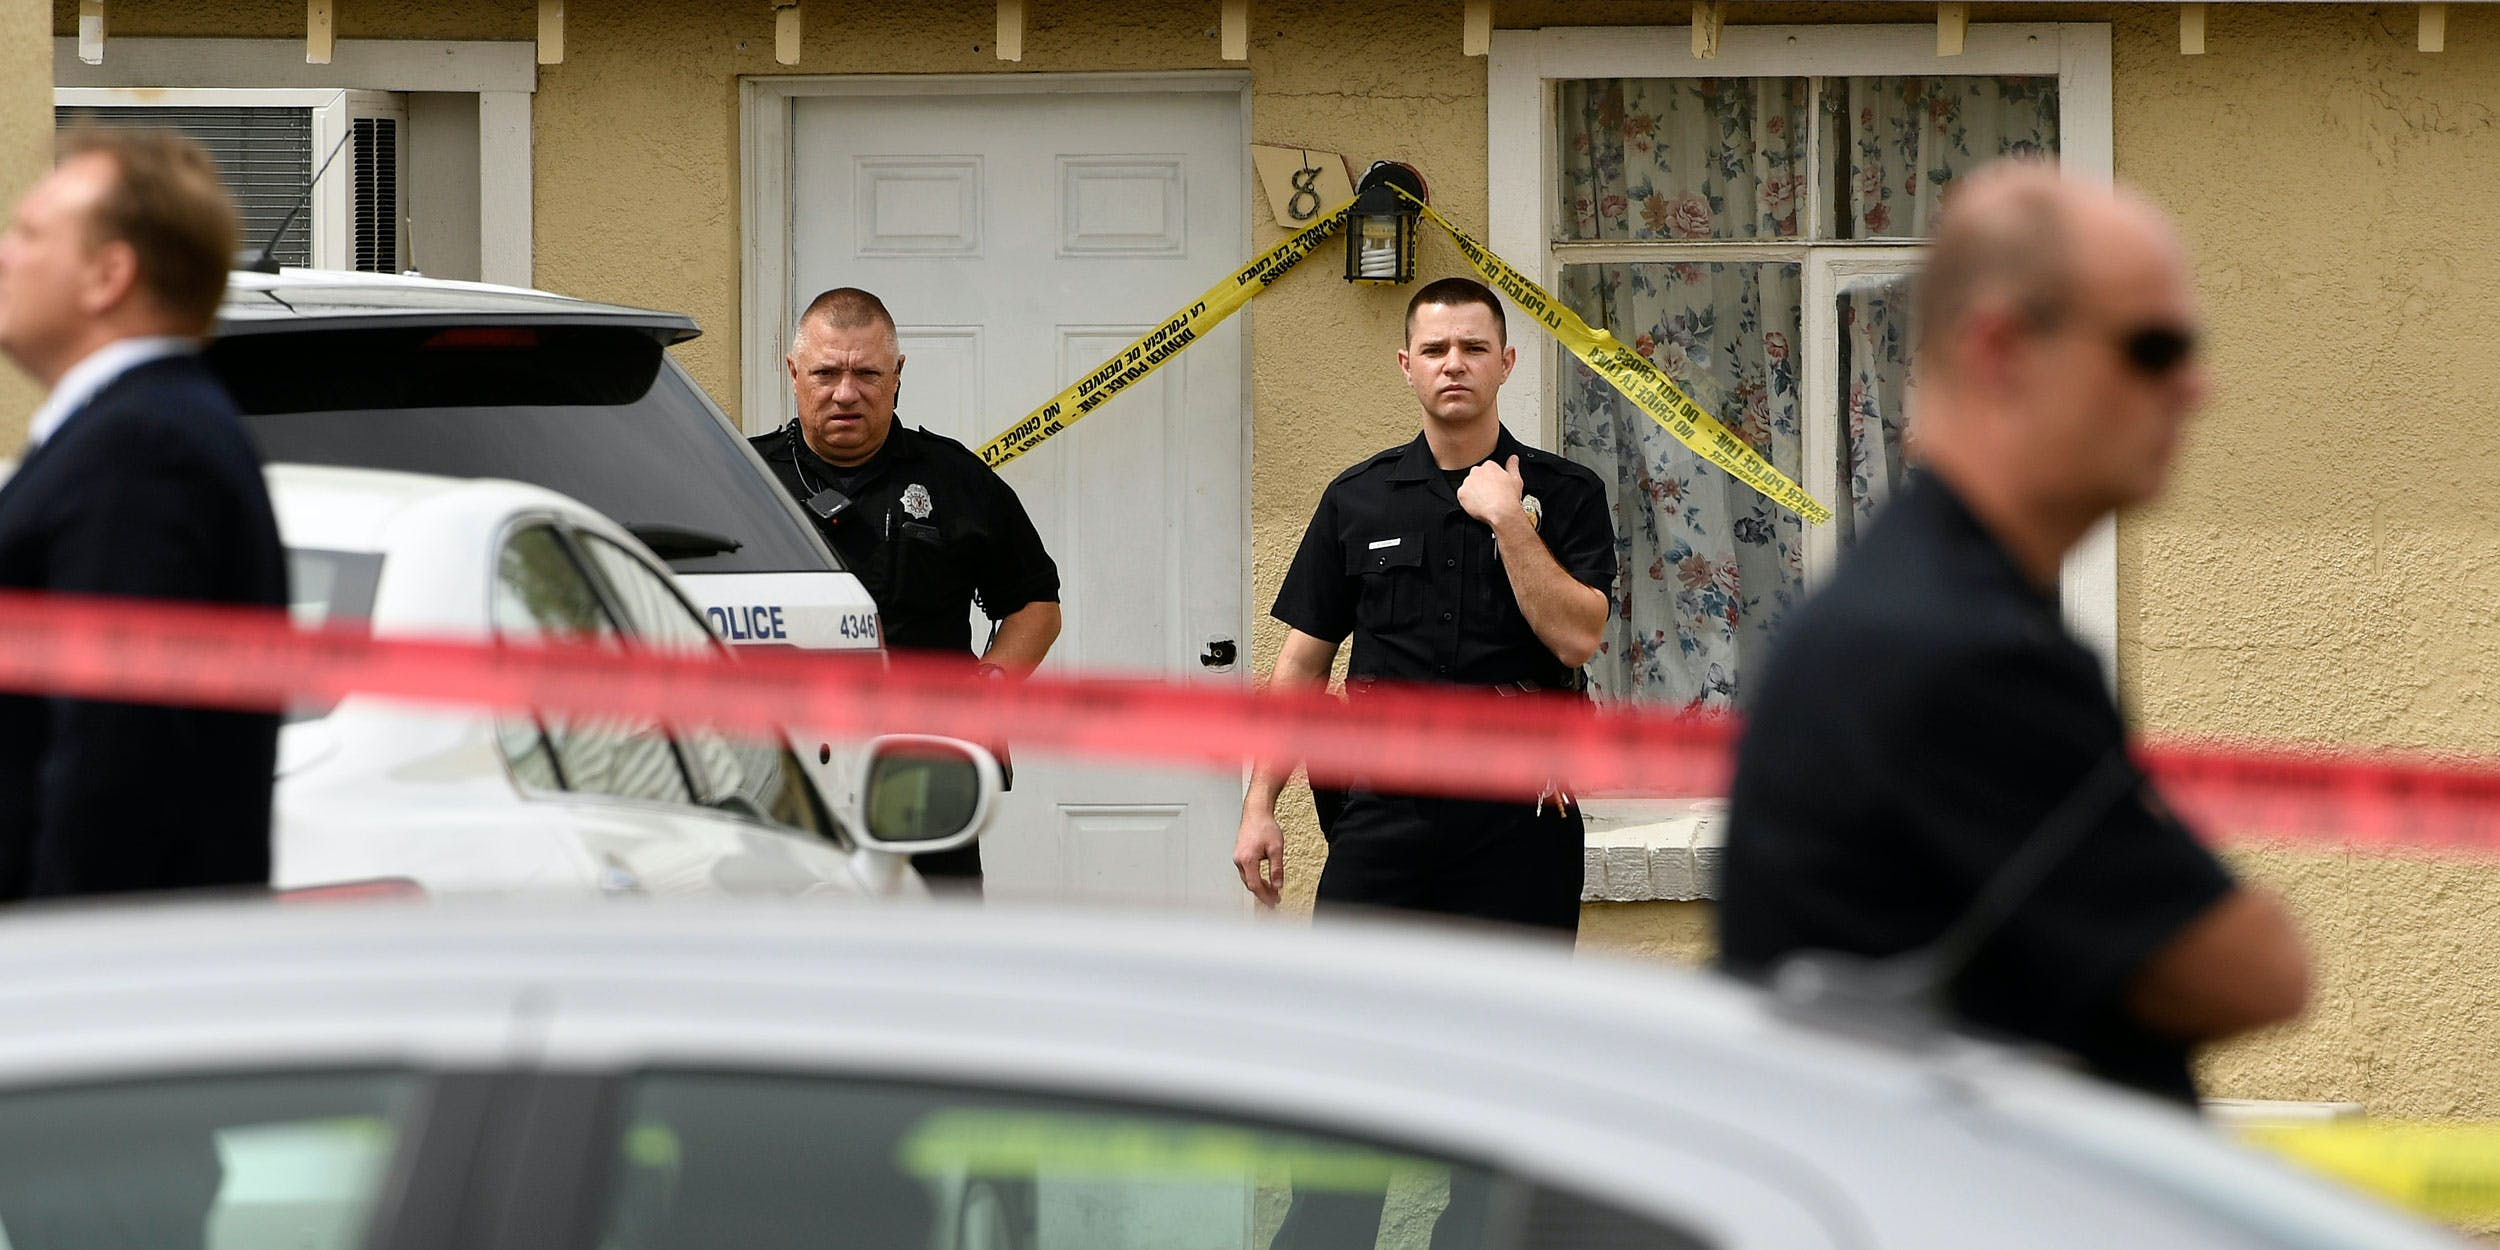 Officers guard a motel at the scene of a shooting in 2016. A new studysuggests that police are solving more serious crimes, like this one, in Colorado and Washington since cannabis legalization.